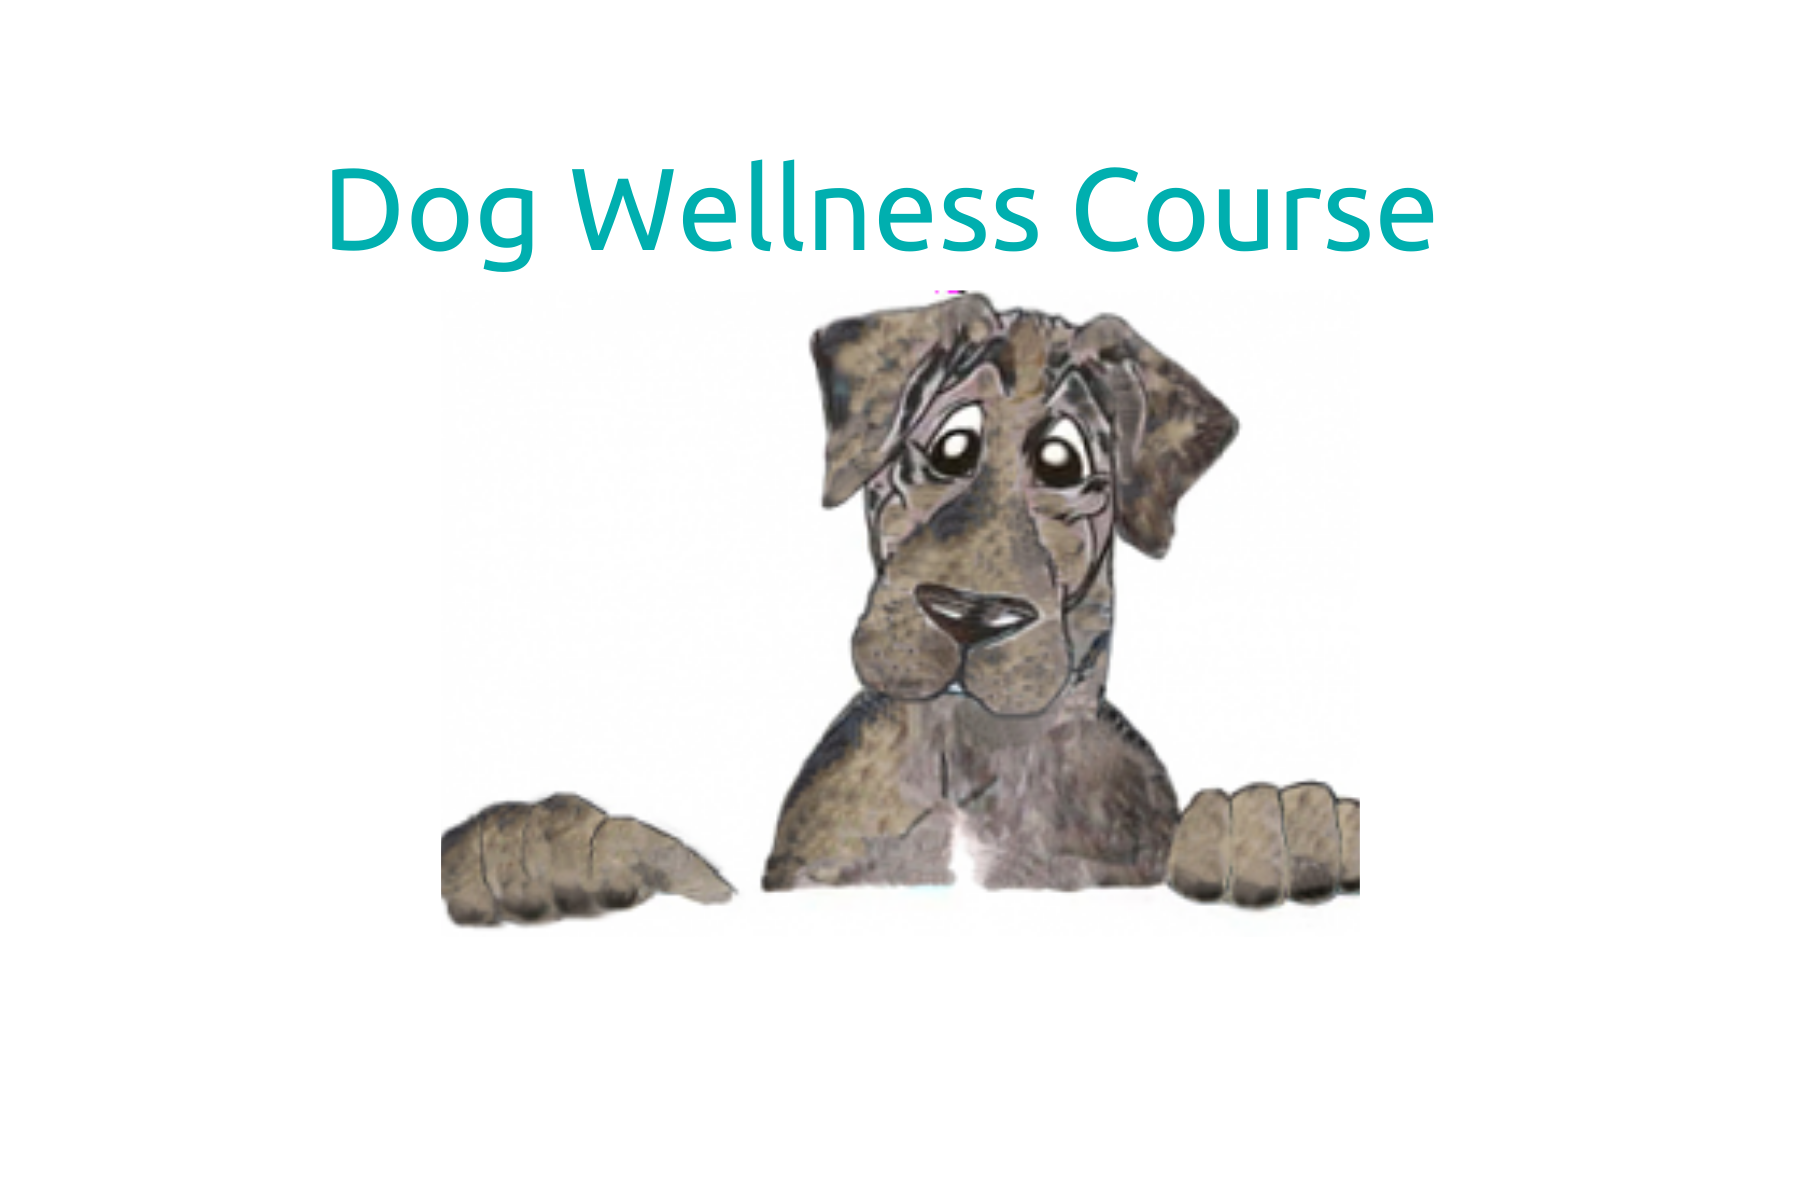 How to Have a Healthy Dog Course